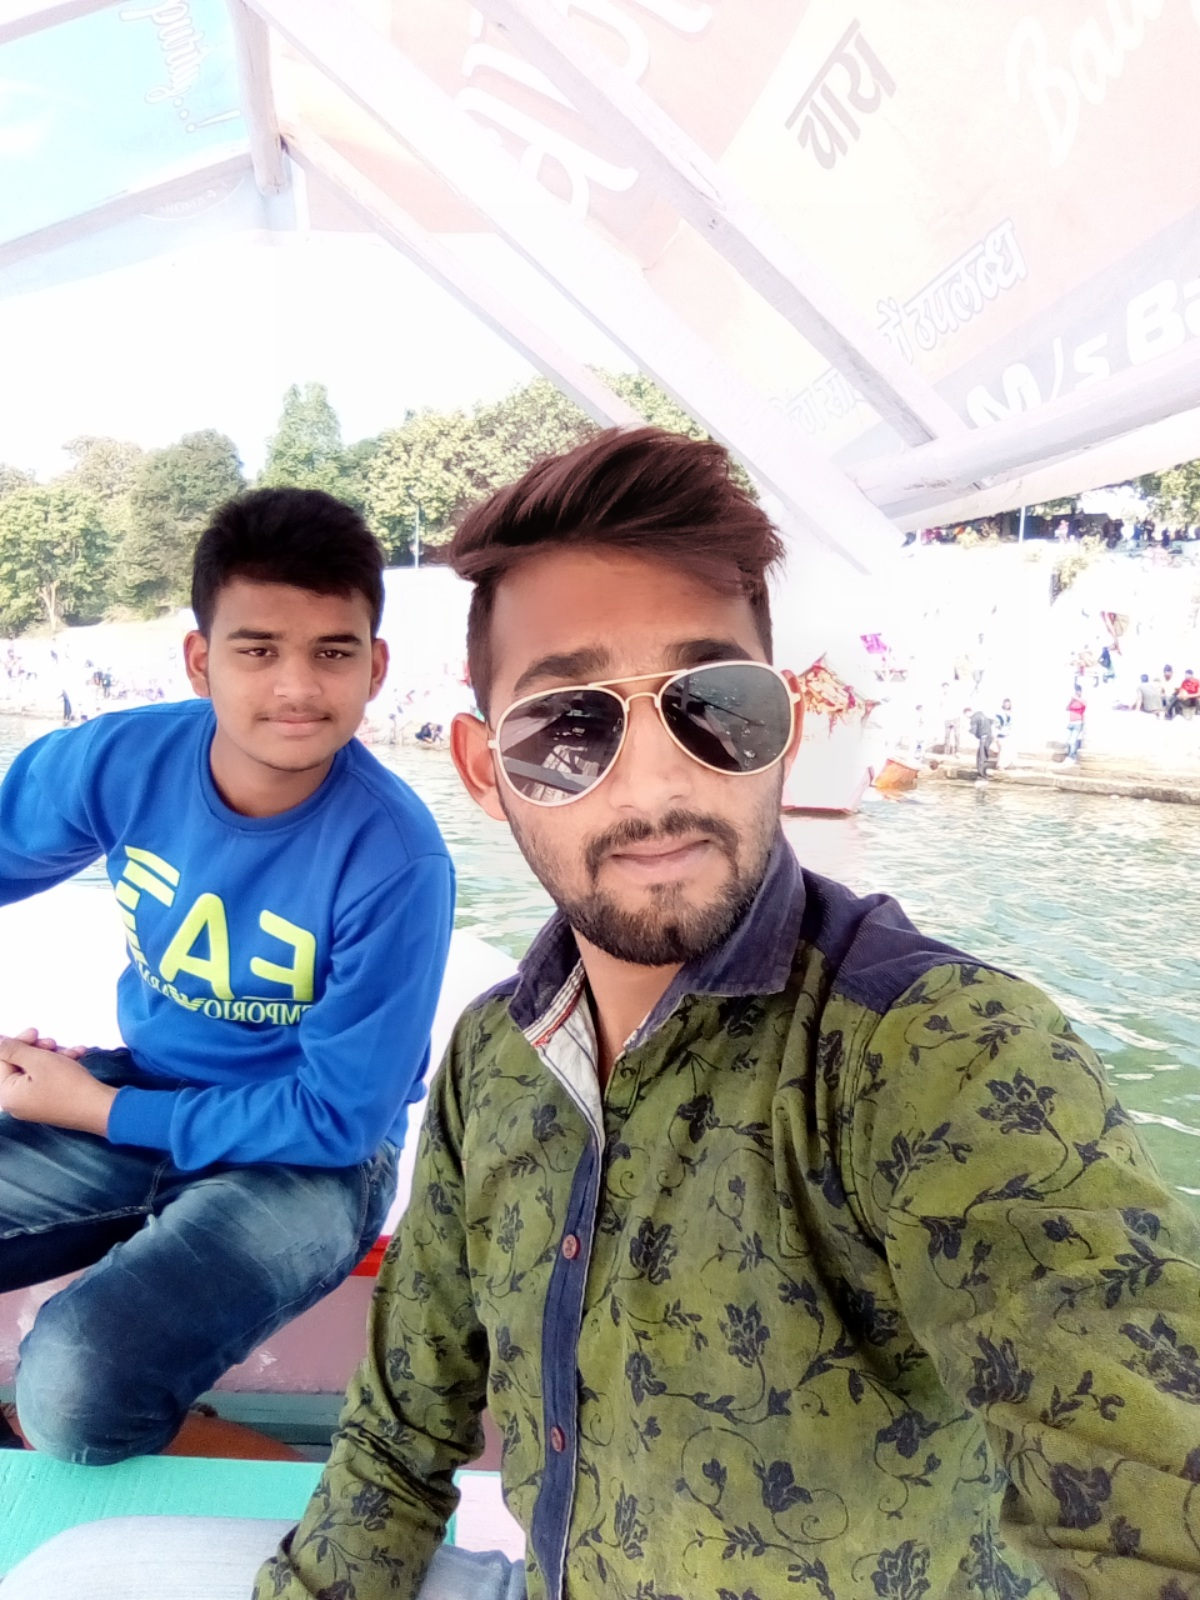 bhopal gay singles In the category personals bhopal you can find more than 1,000 personals ads, eg: matrimonials, friendship or women seeking men.